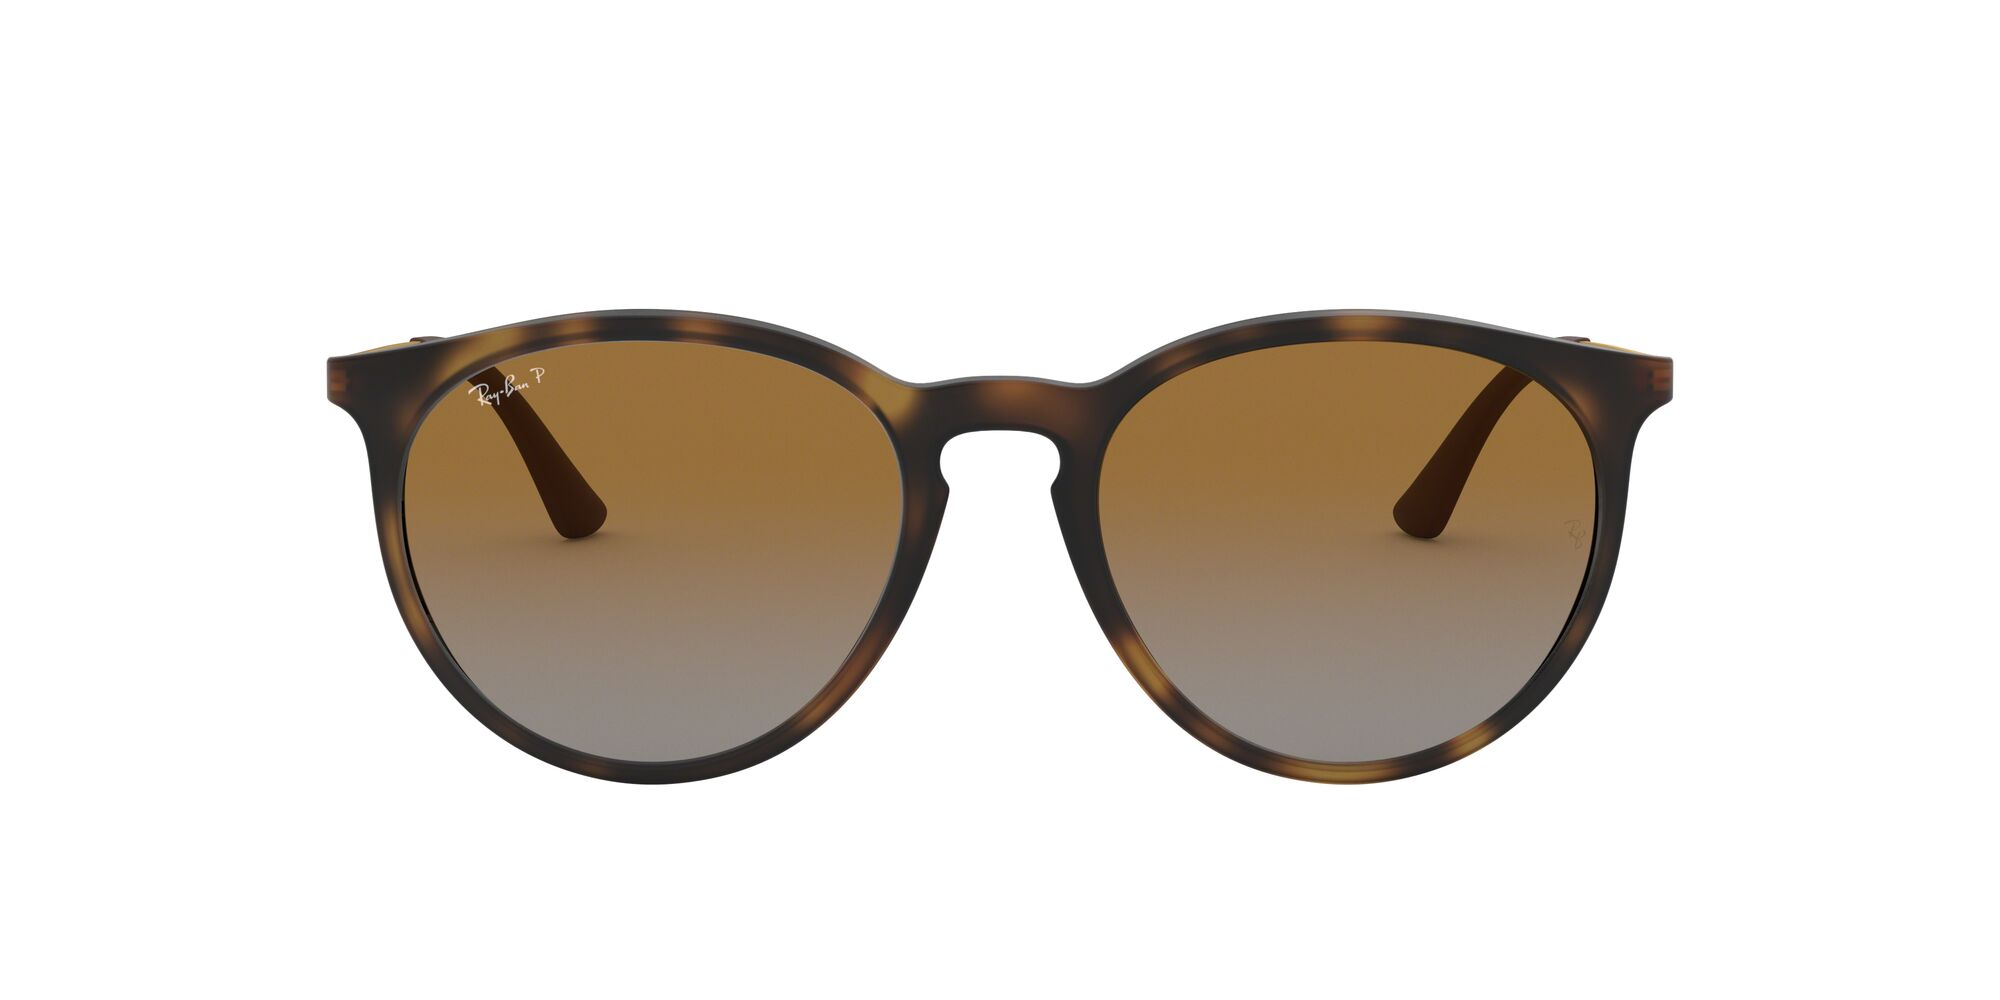 Front Ray-Ban Ray-Ban 0RB4274 856/T5 53/18 Bruin/Bruin